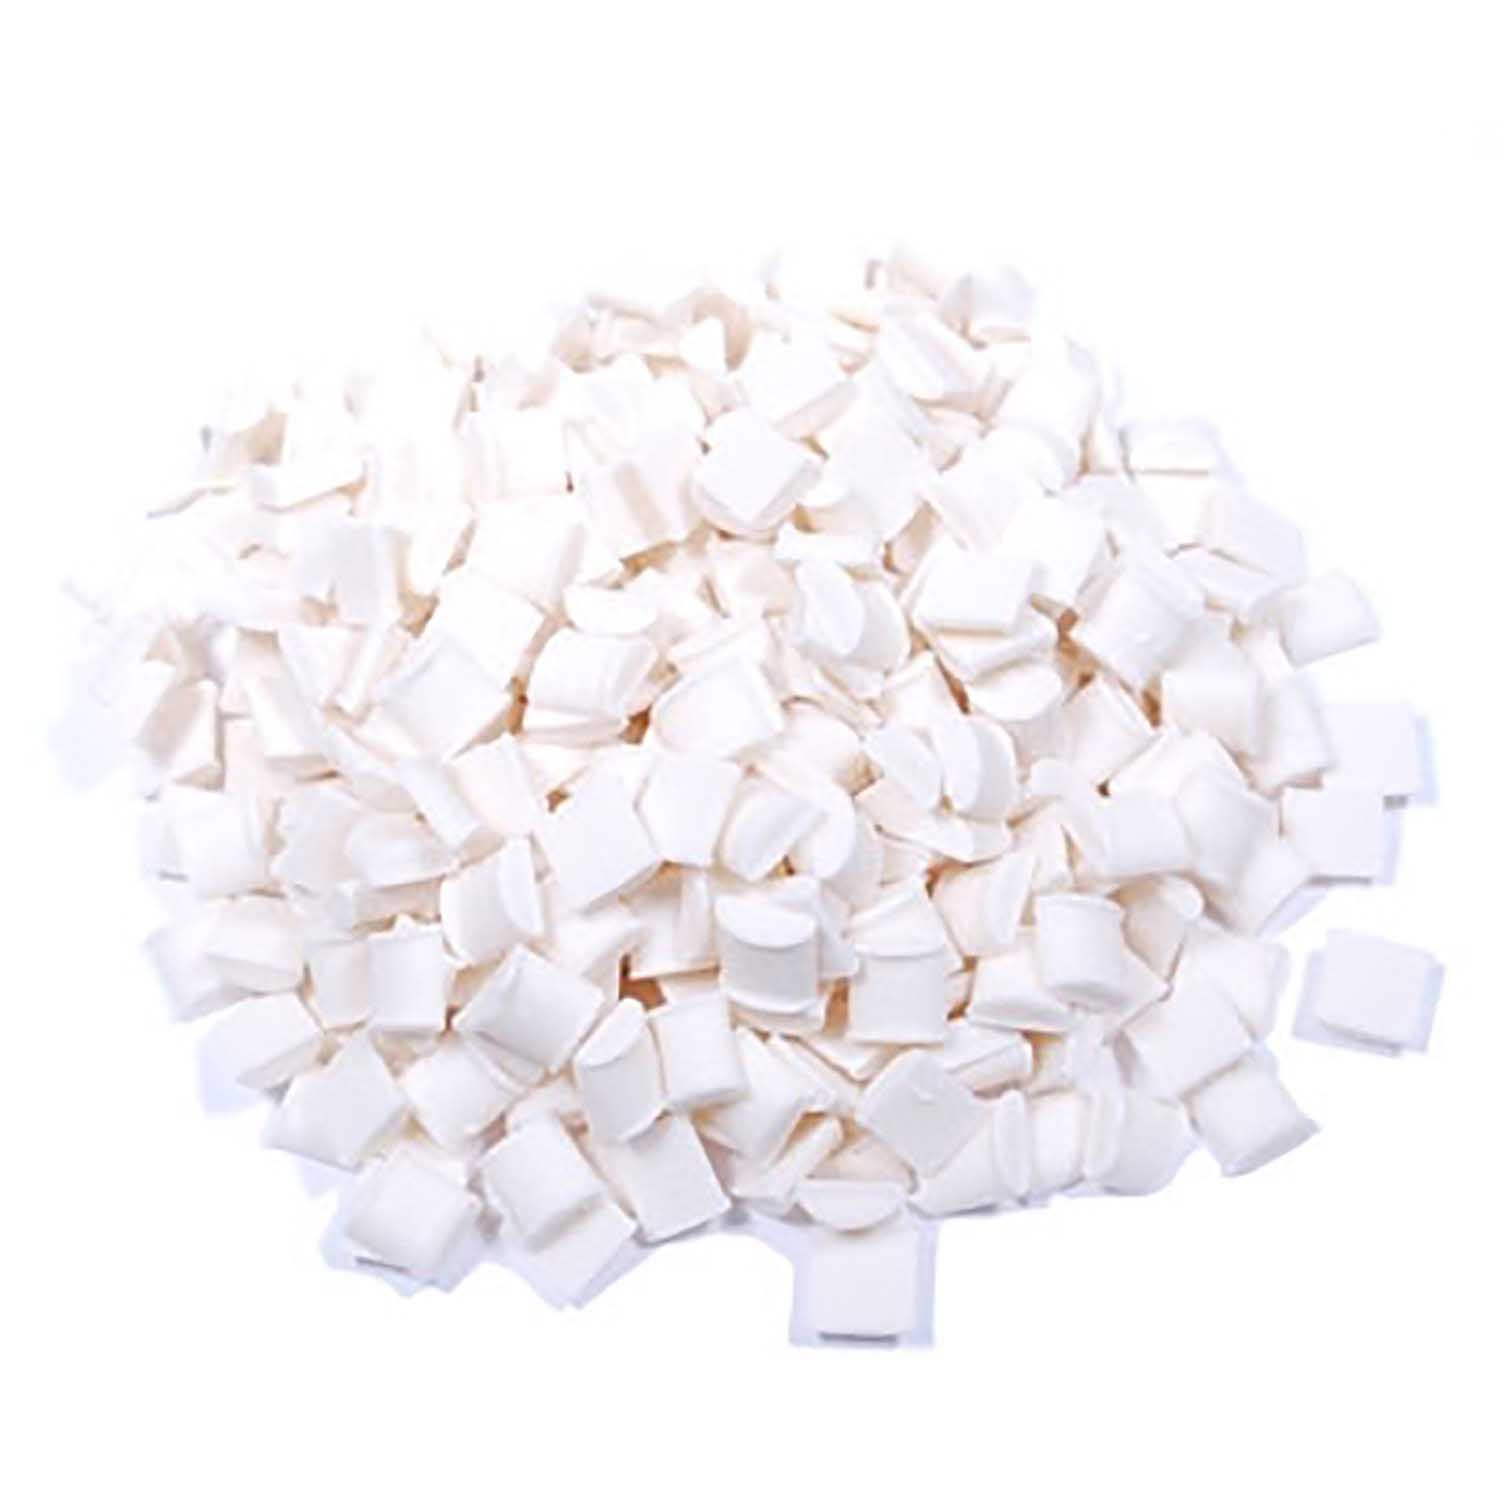 VanLeer Renny Sugar Free White Chocolate Candy Coating